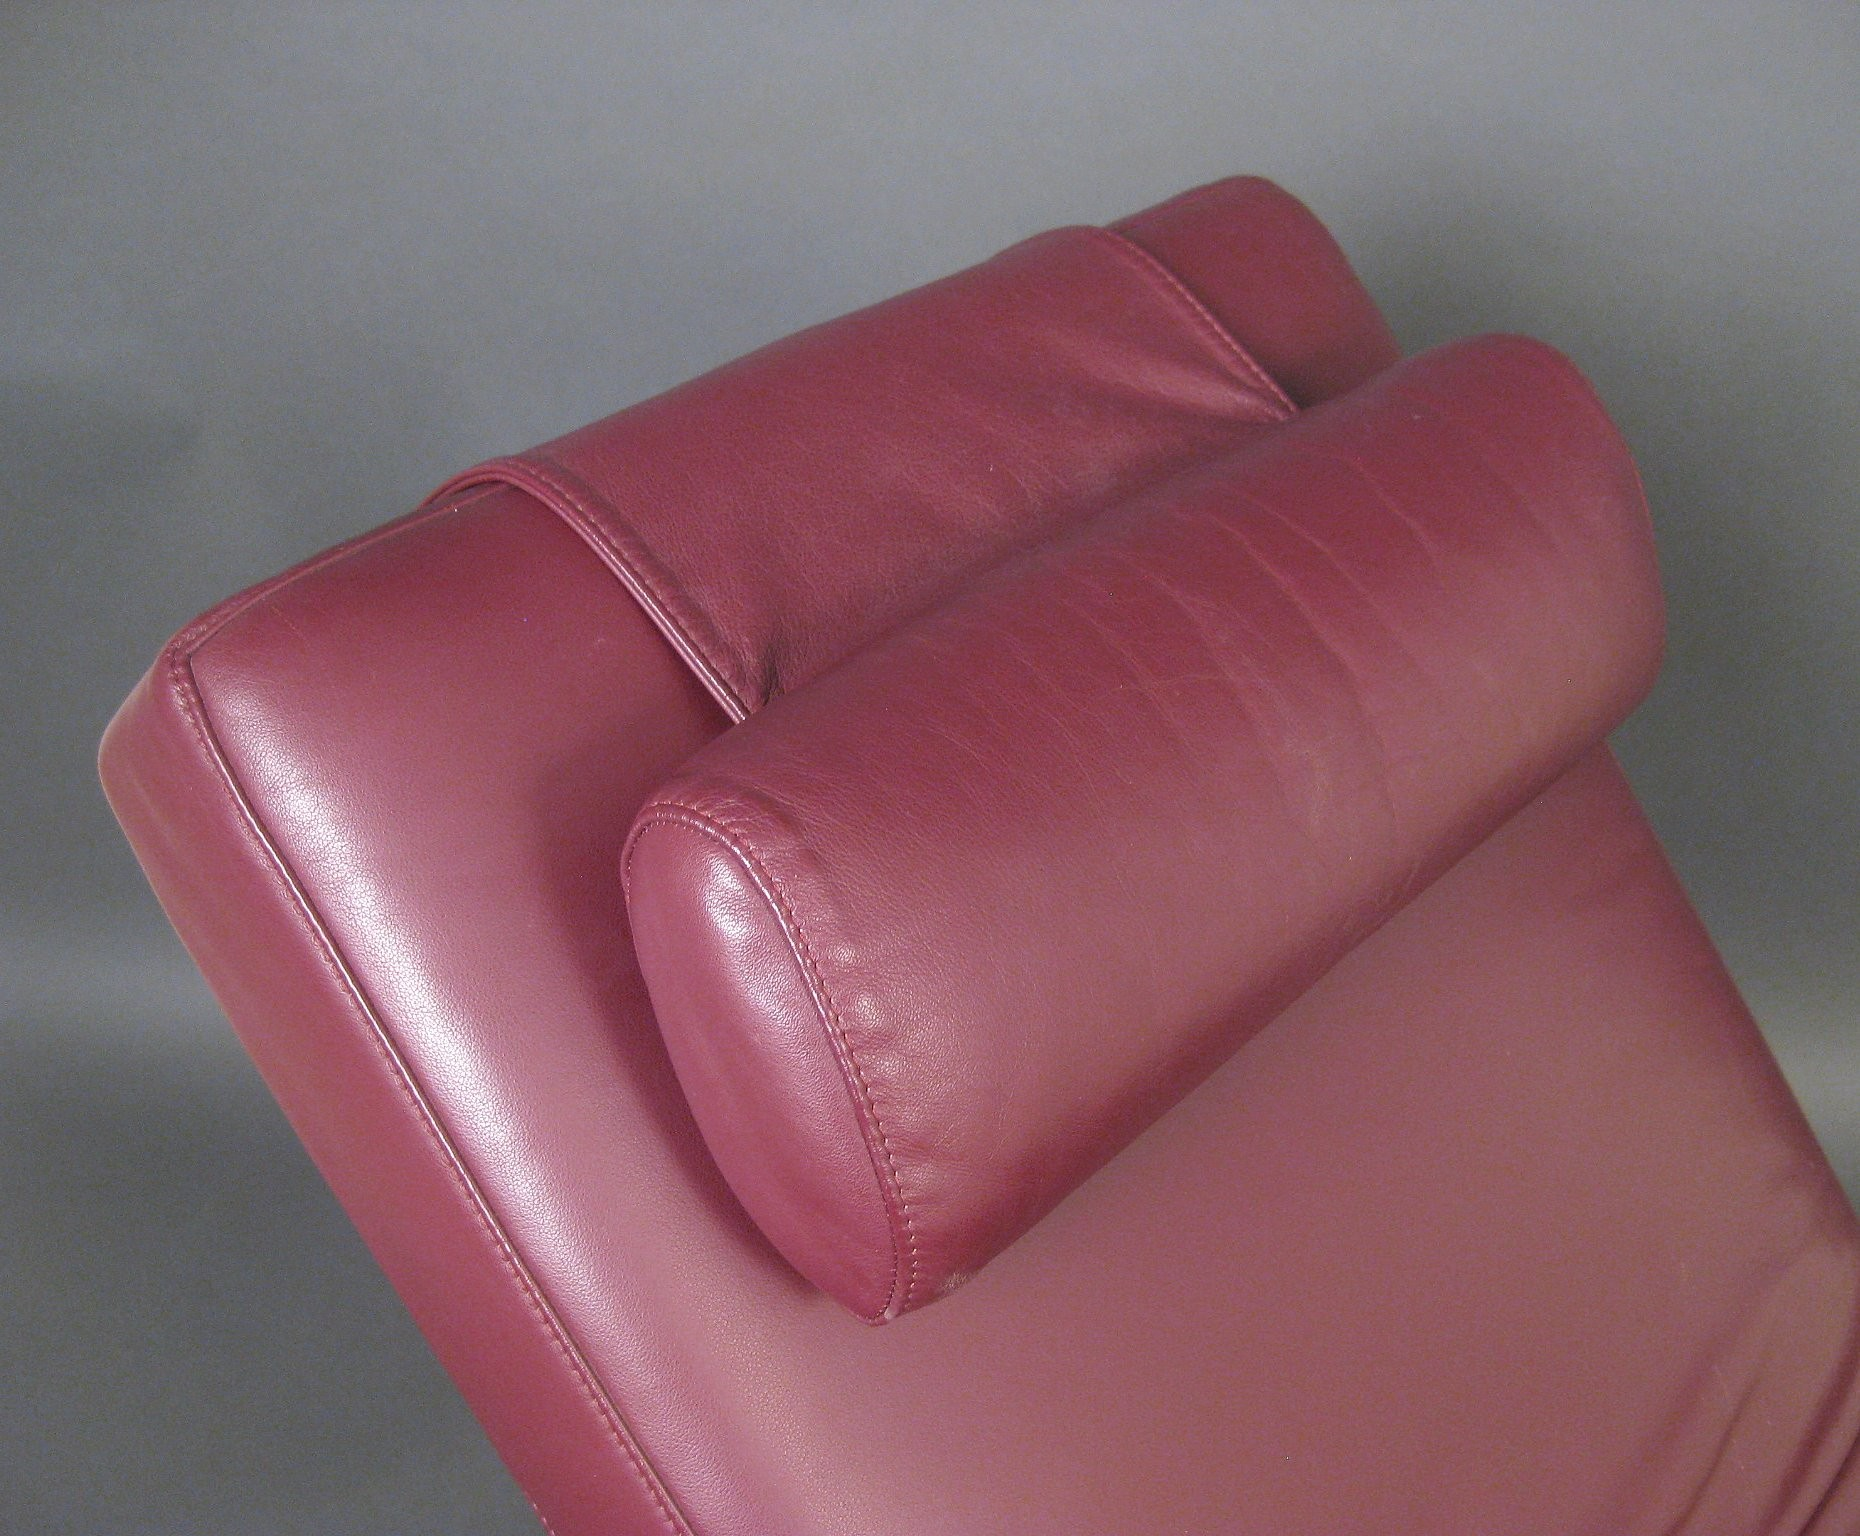 Basix 680 Deckchair In Pink Leather Rolf Benz 1970s Design